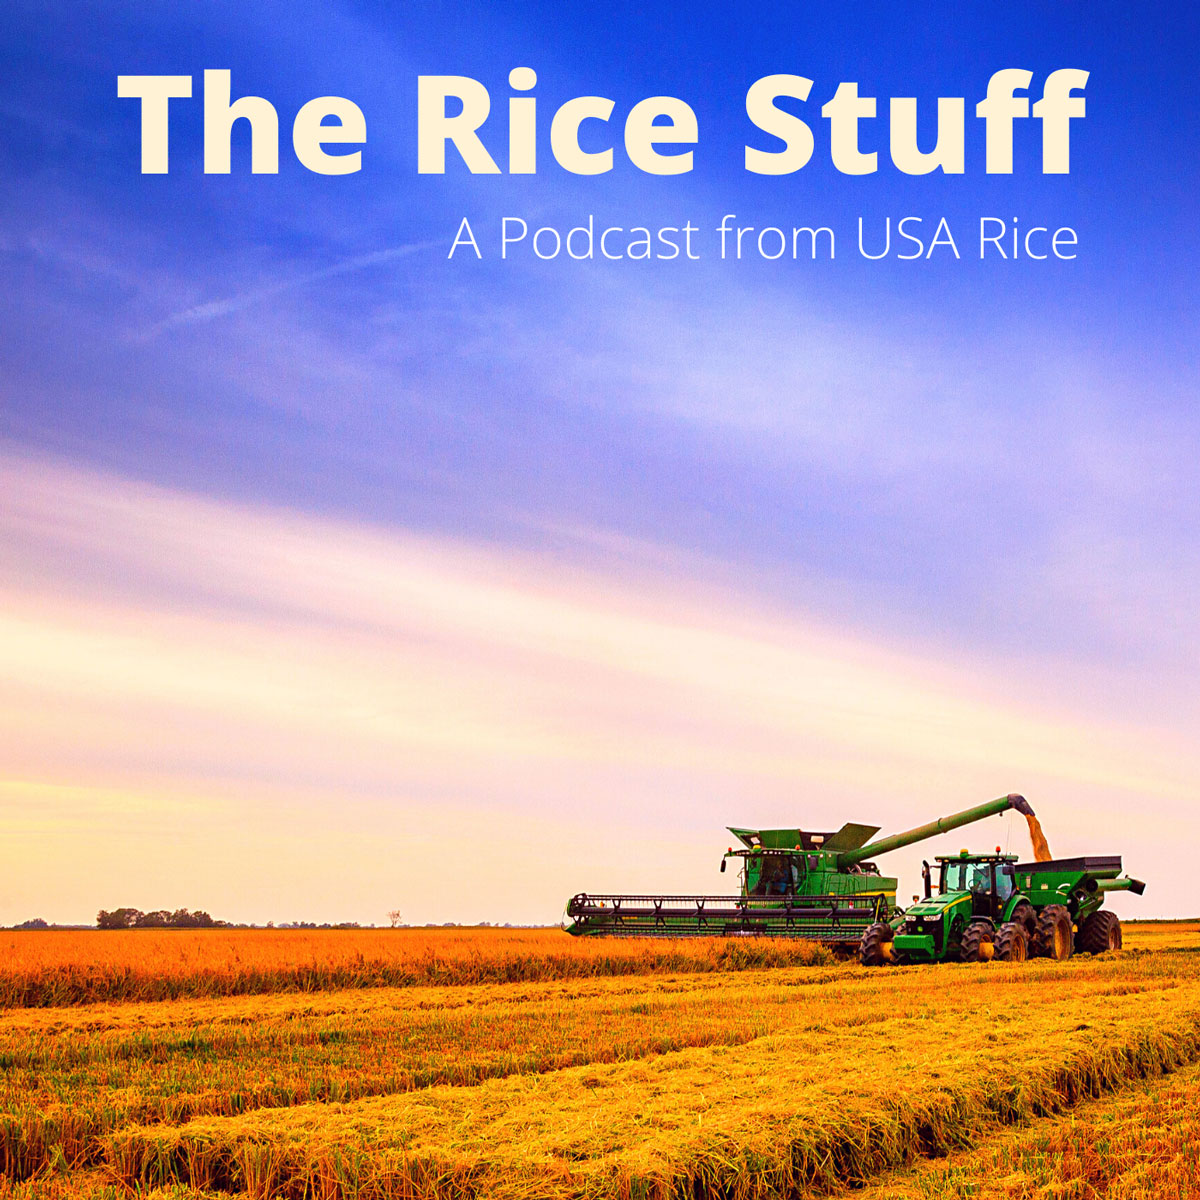 The Rice Stuff Podcast logo shows harvest equipment in golden rice field with vast blue sky above